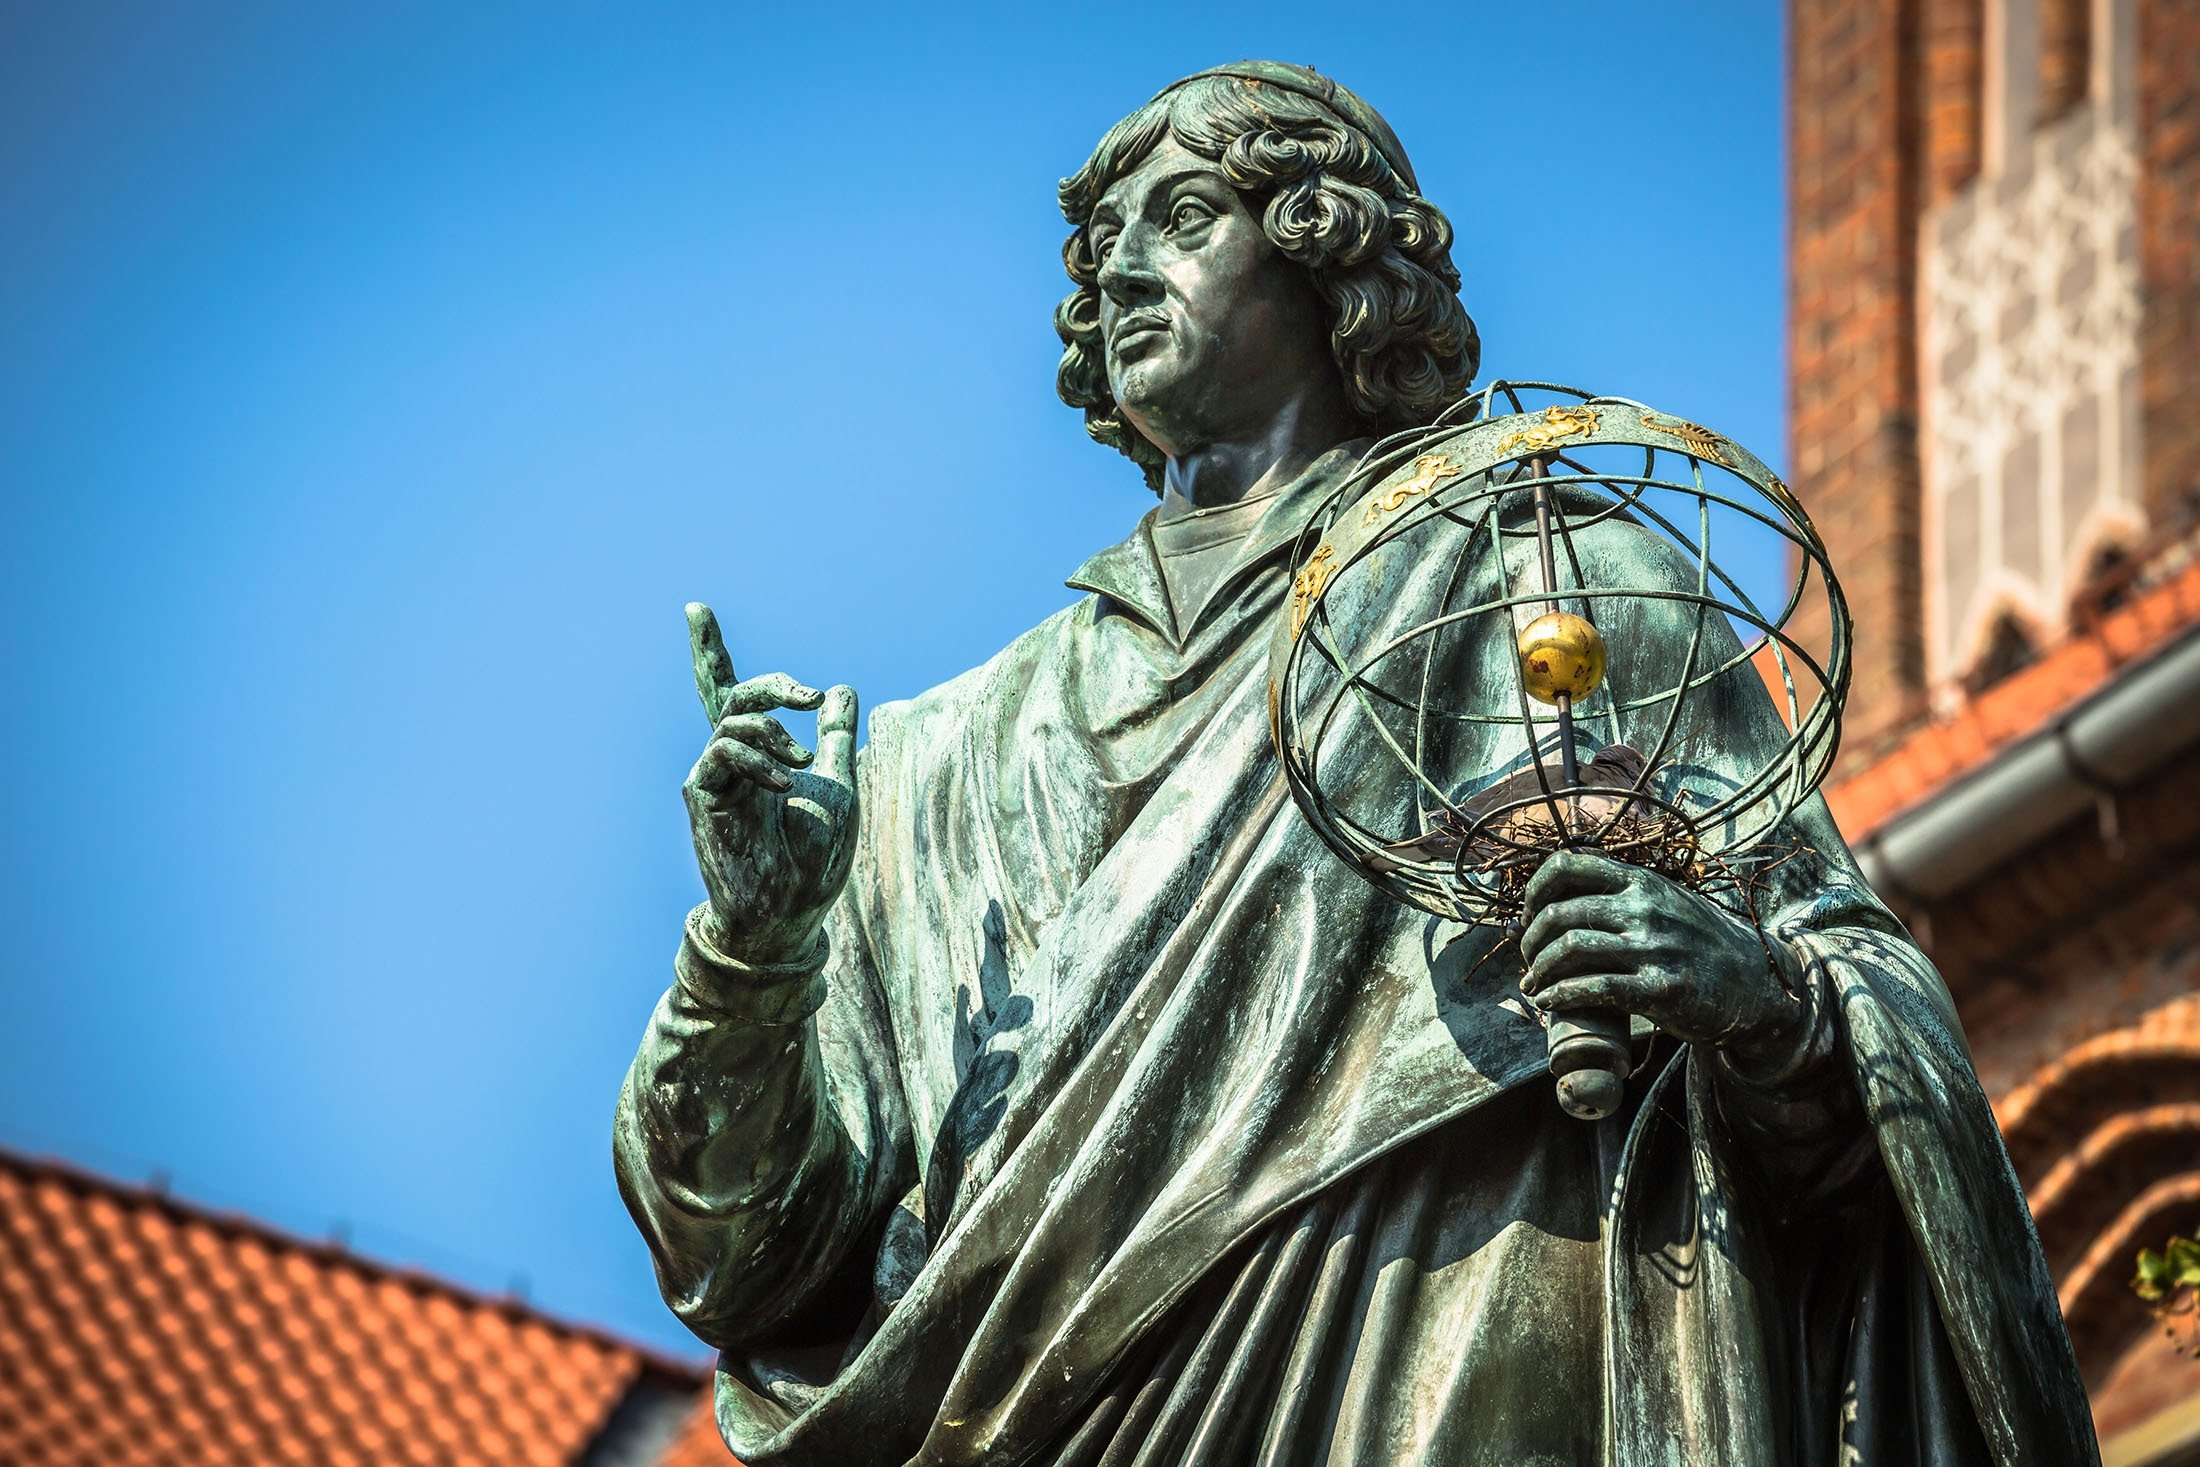 A monument of great Renaissance astronomerNicolaus Copernicus can be seen in Torun, Poland. (Shutterstock Photo)